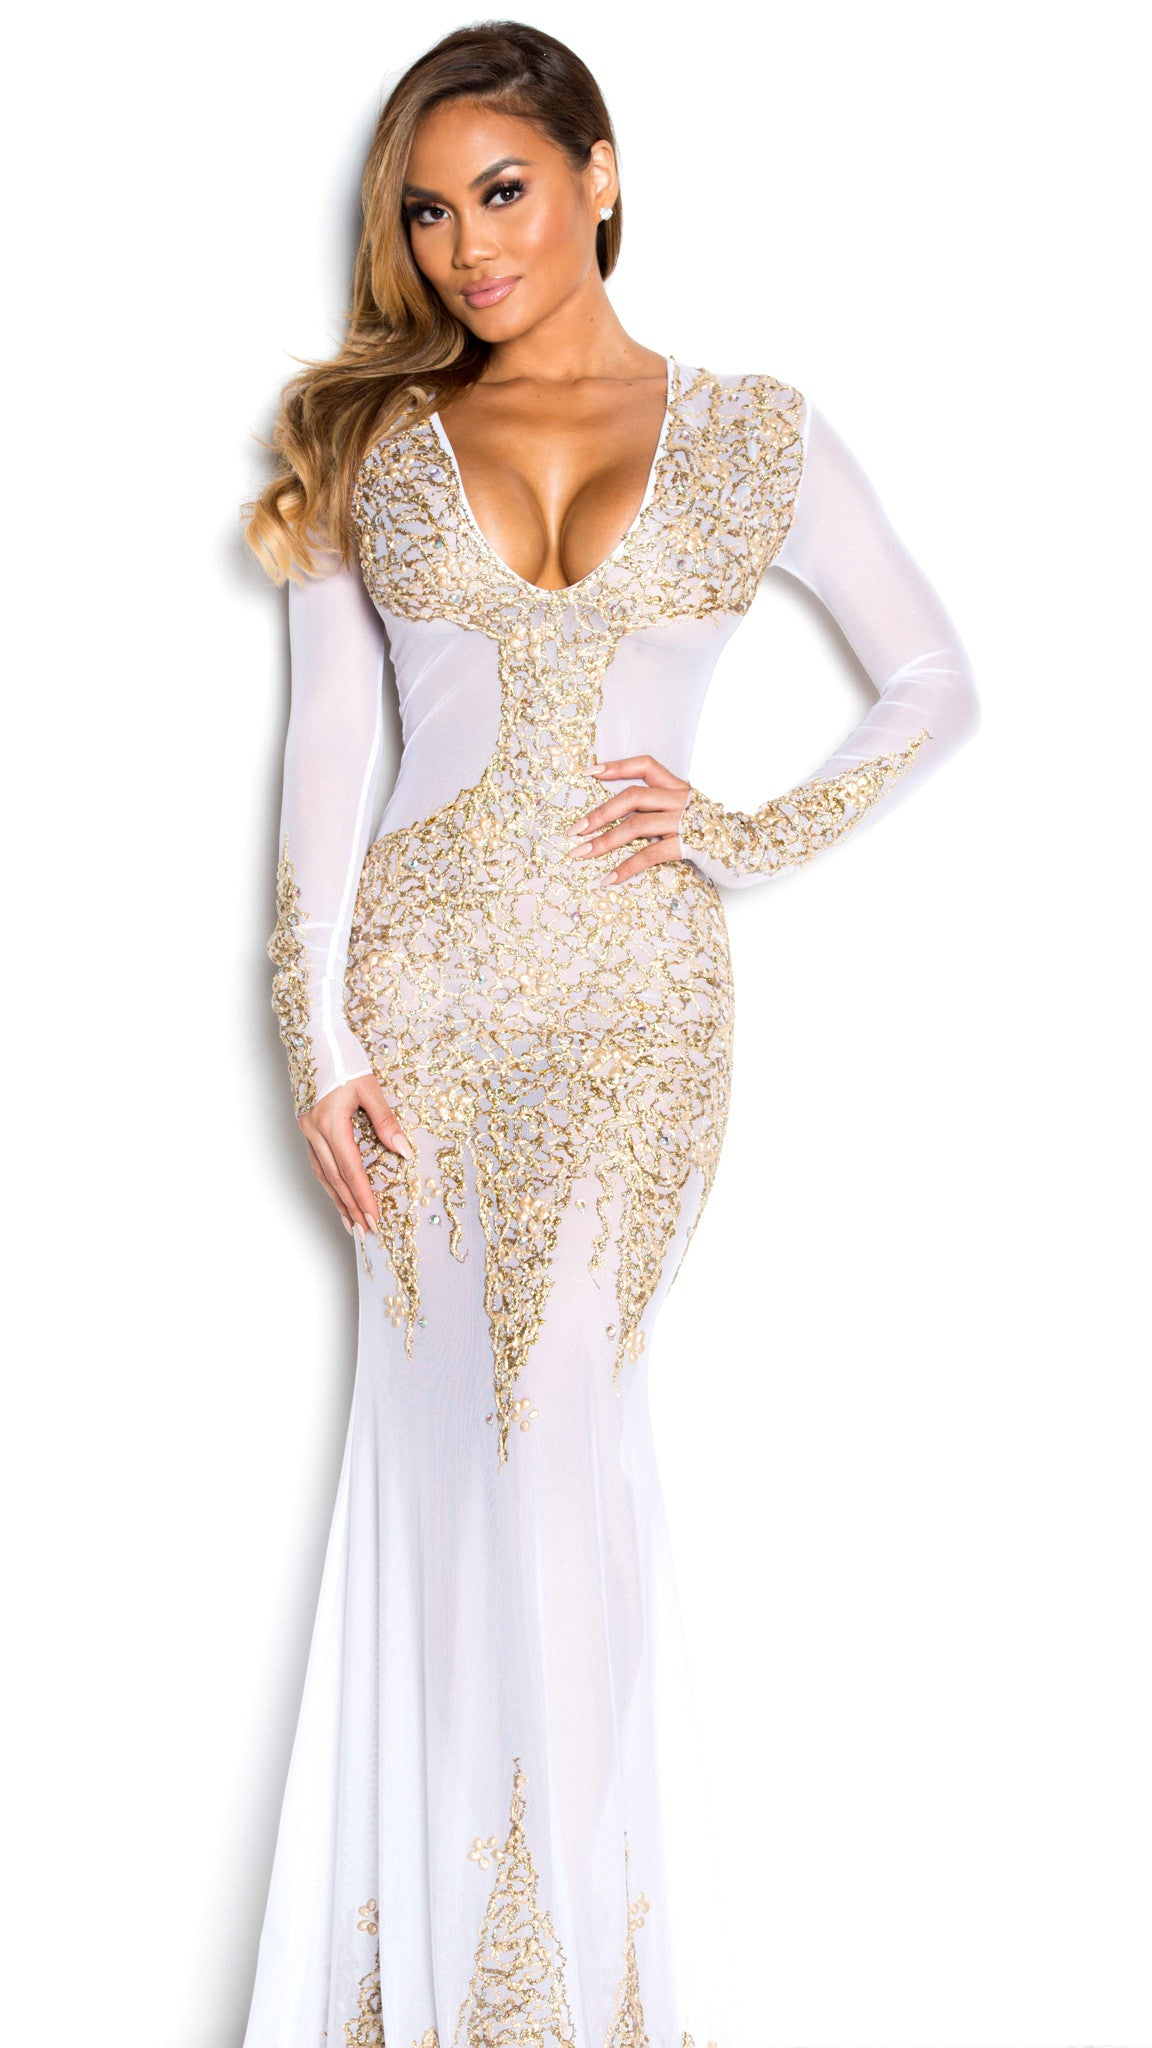 beyonce gown in white with gold holt